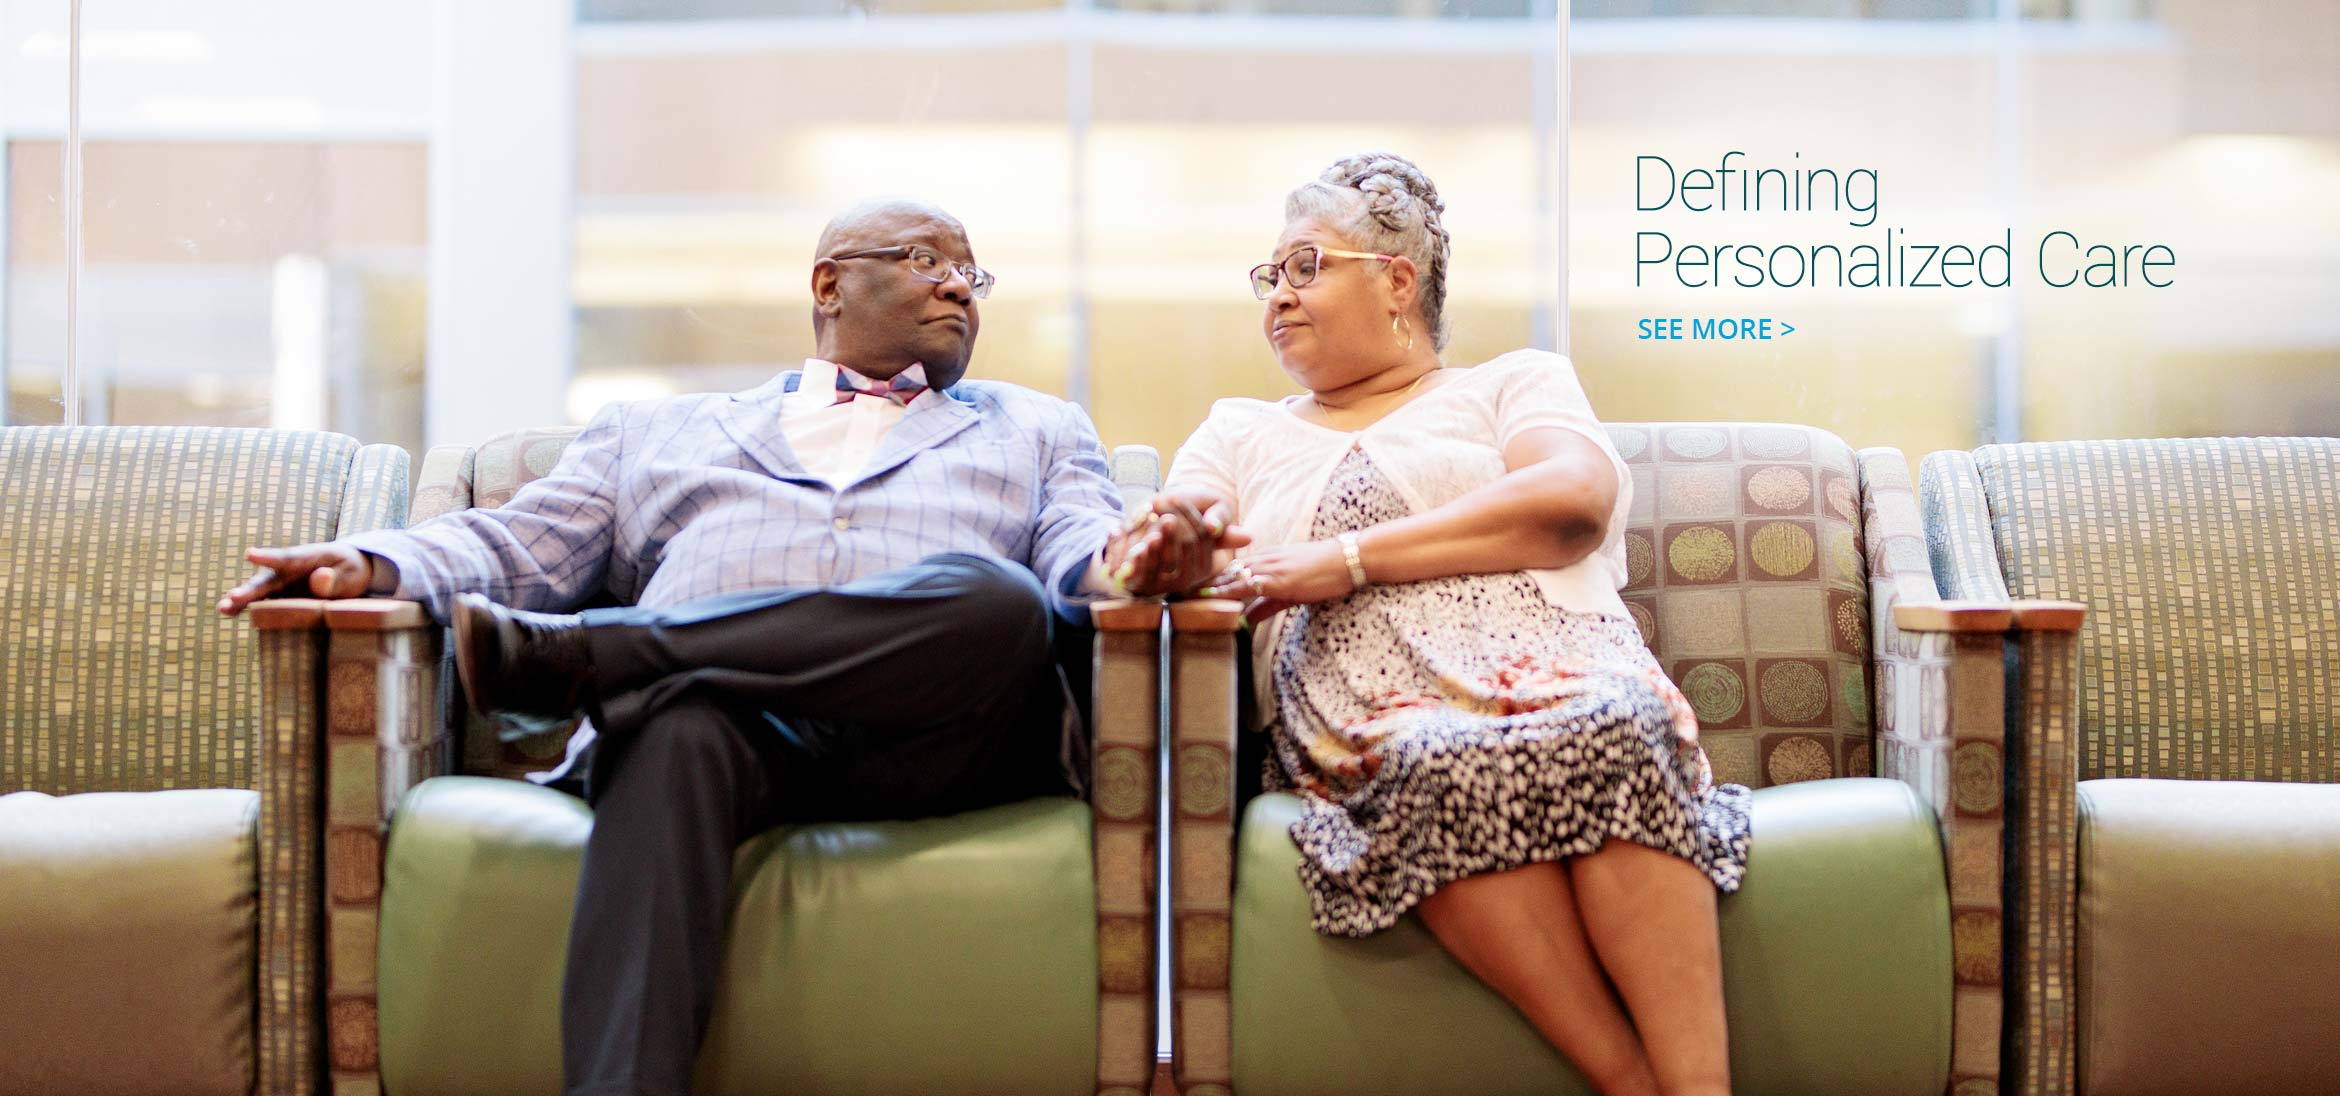 Defining Personalized Care